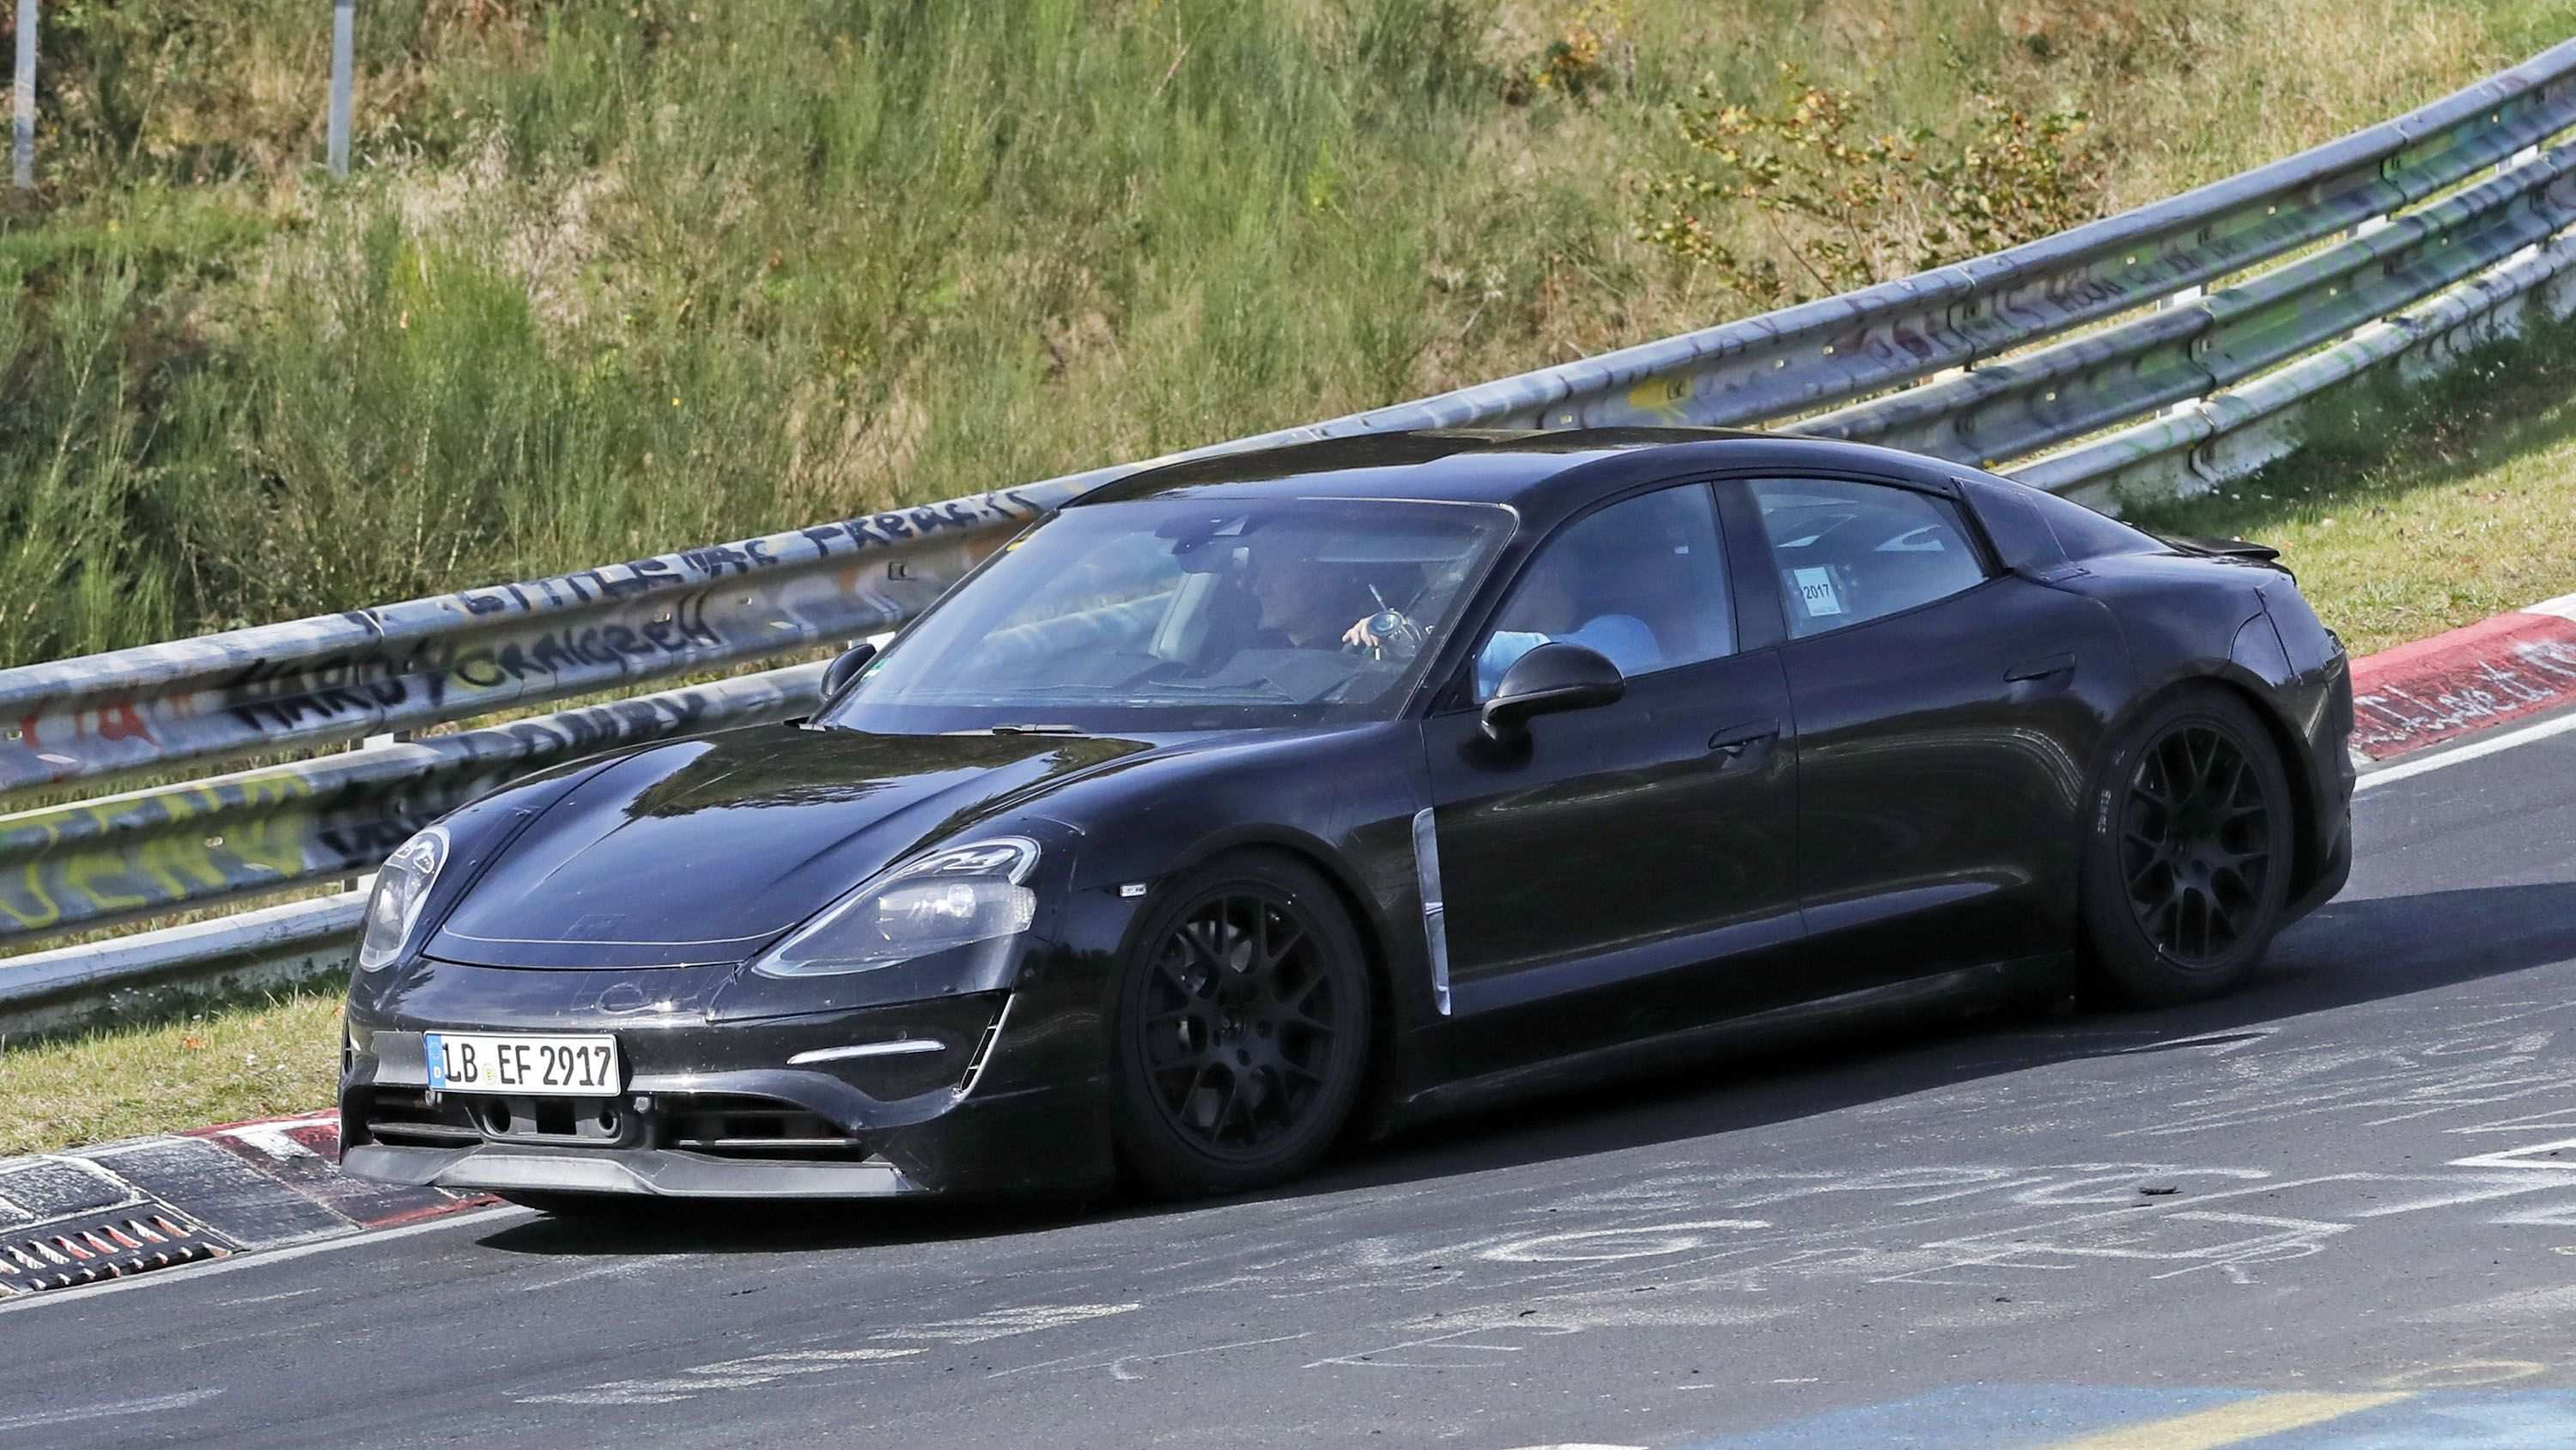 72 Gallery of 2020 Porsche Panamera Specs and Review by 2020 Porsche Panamera